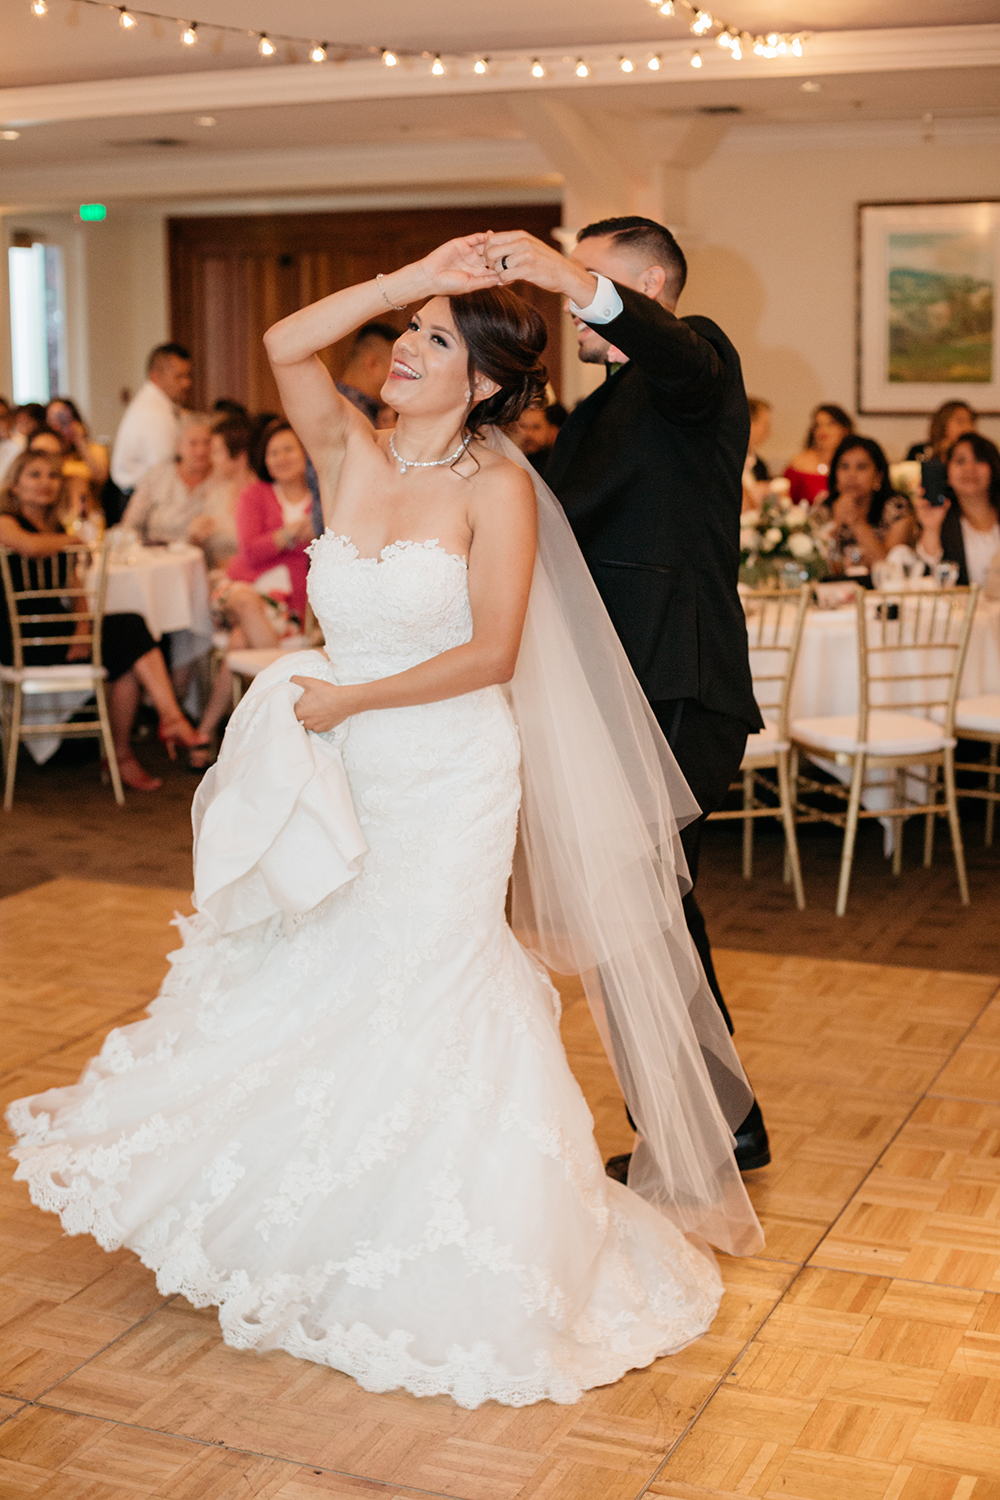 A bride and groom's fun first dance.